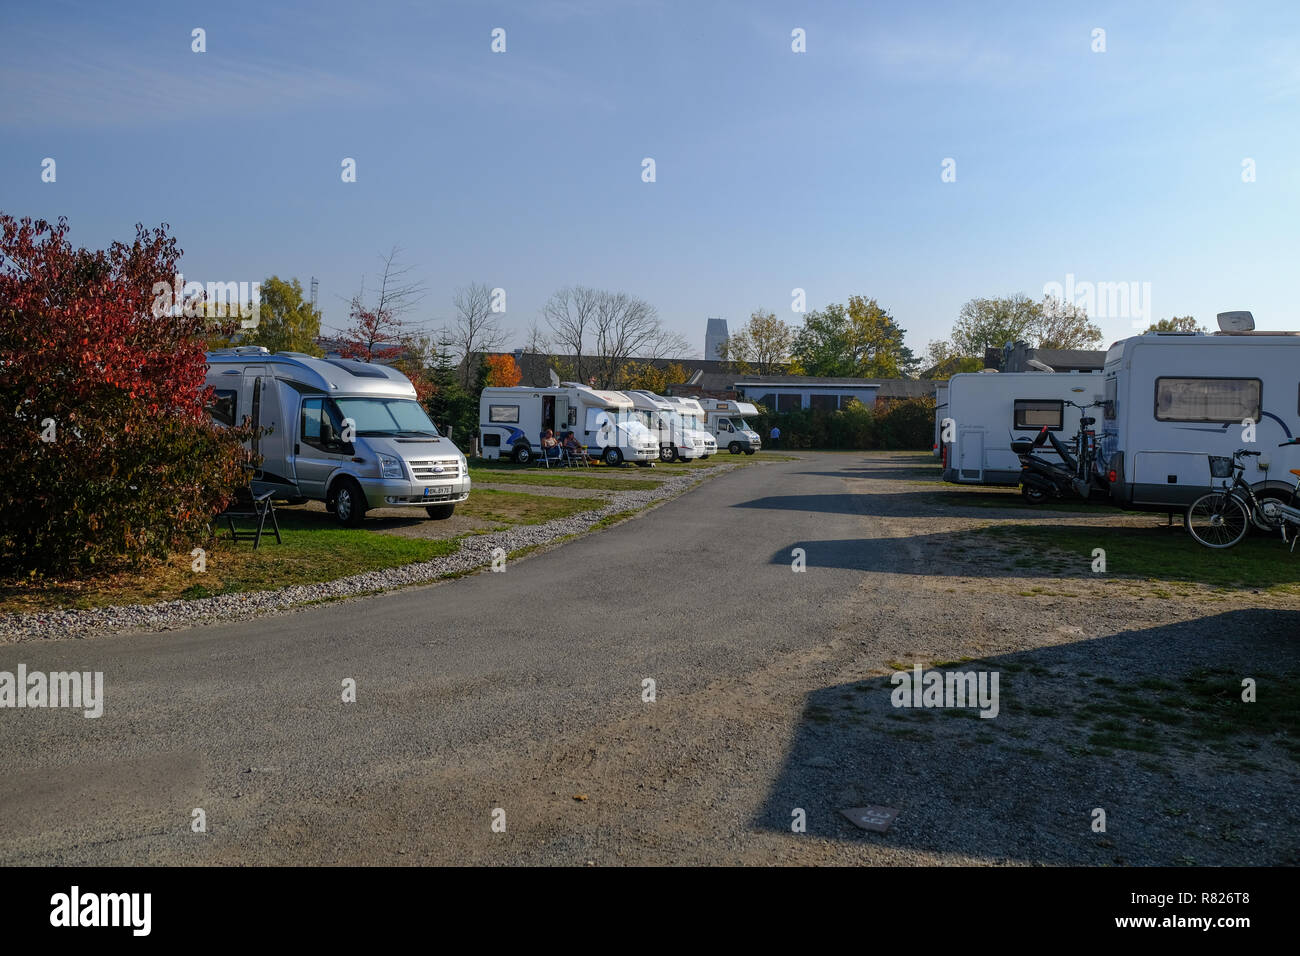 Caravan parking ground or camping place or Campingplatz with caravans or camping trailers in Wismar, Germany during sunny day - Stock Image